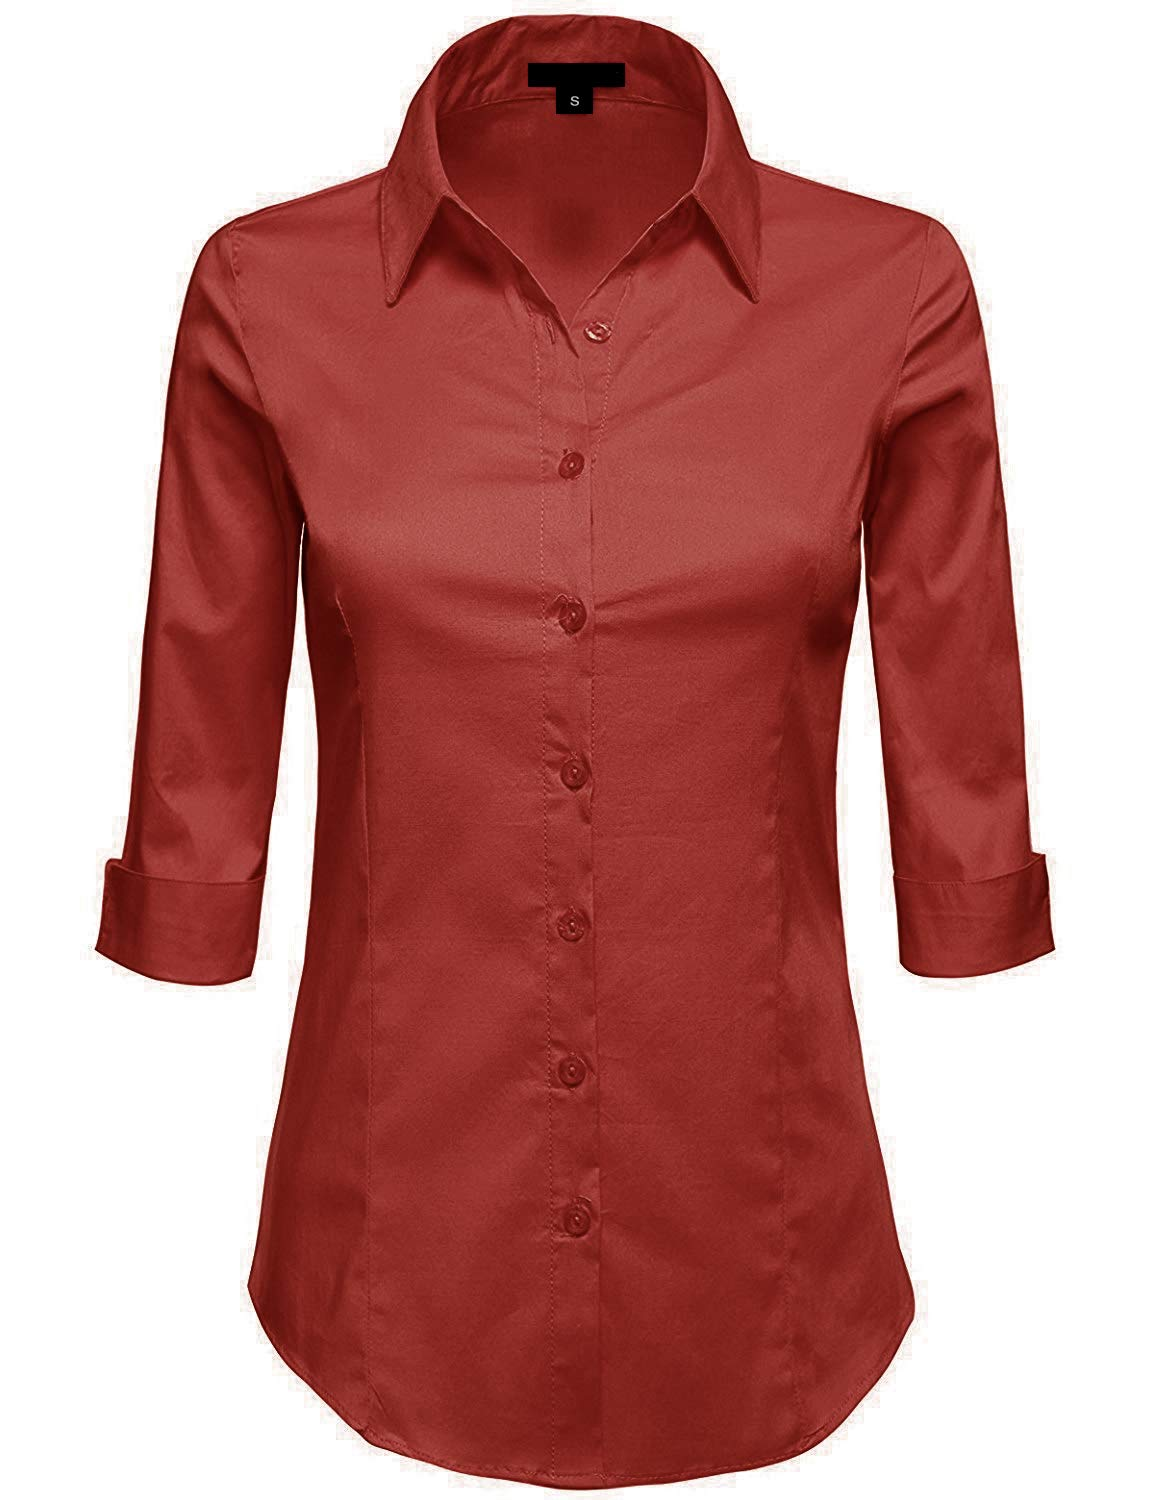 MAYSIX APPAREL Plus Size Womens 3/4 Sleeve Stretchy Button Down Collar Office Formal Shirt Blouse Brick 1XL